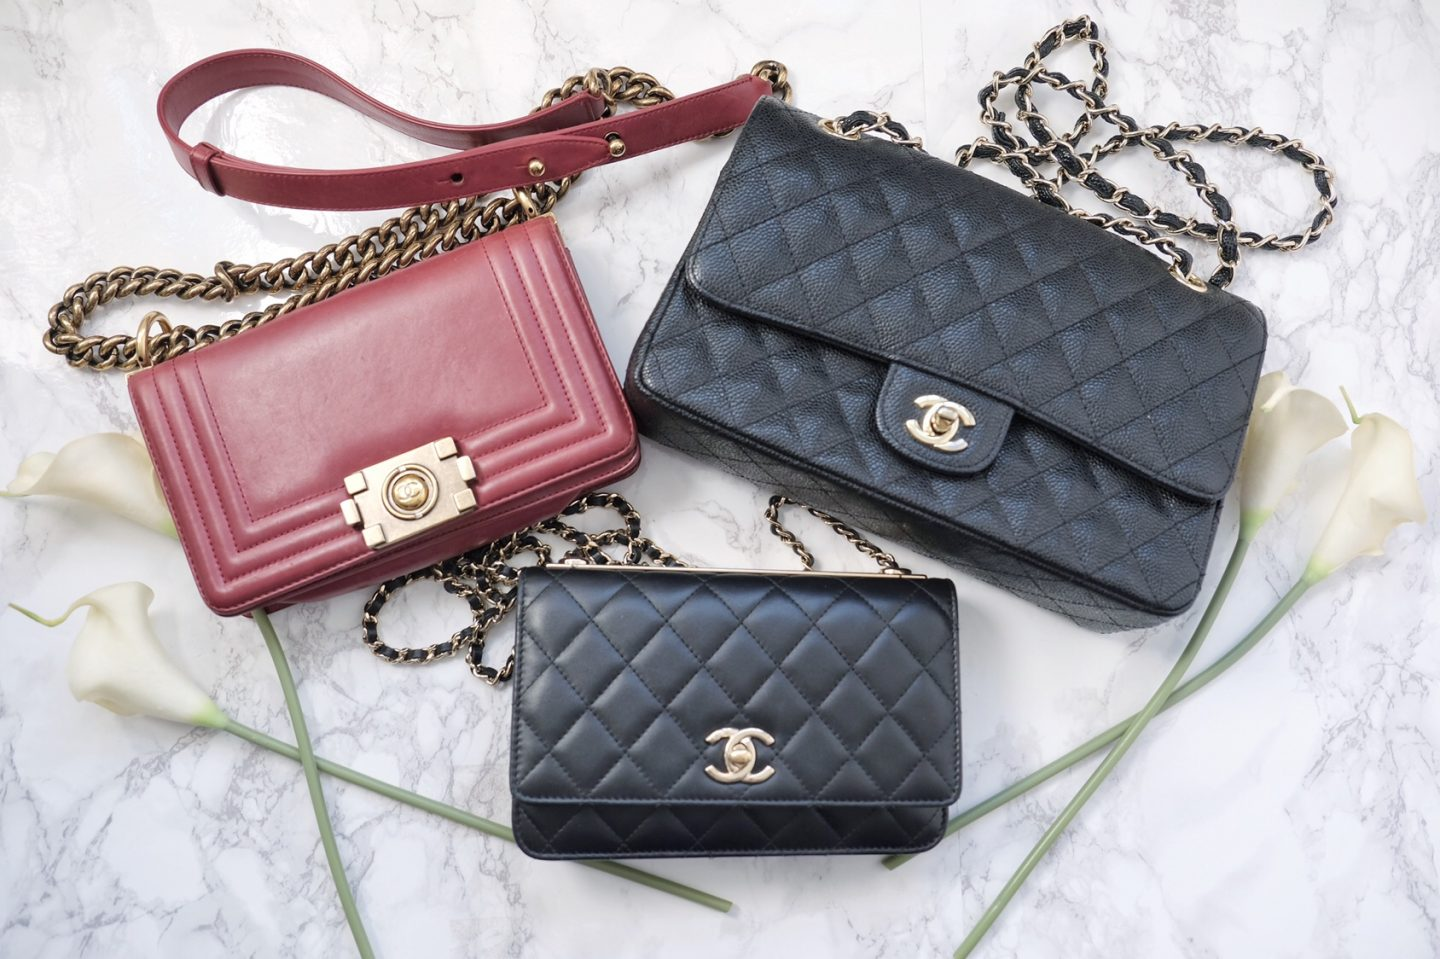 3628fc948 Chanel: WOC & Small Bags // Size & Price Comparison - SINCERELY OPHELIA